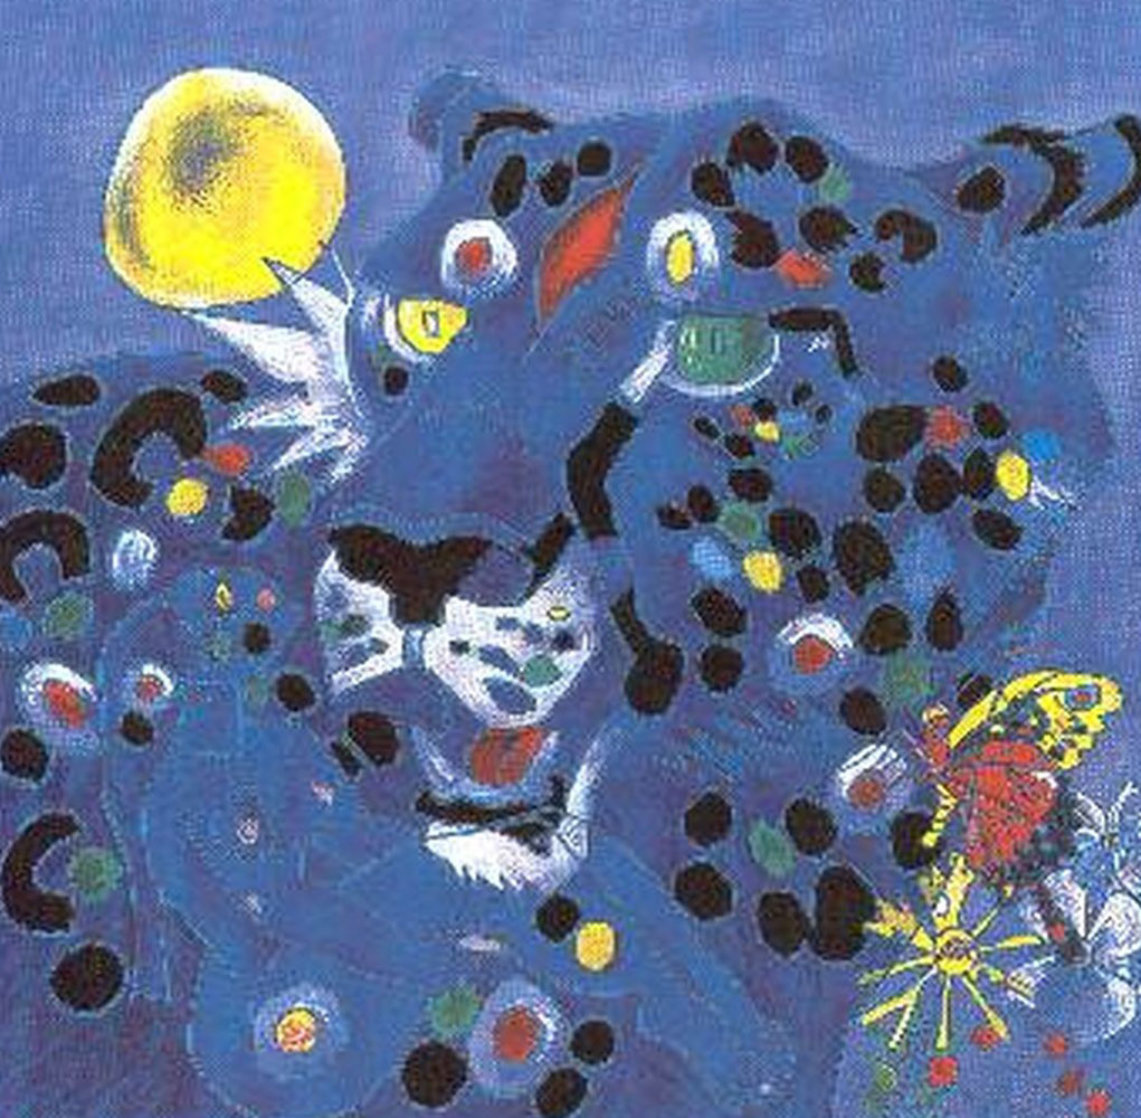 Vision-Blue Cat 2001 Limited Edition Print by Tie-Feng Jiang